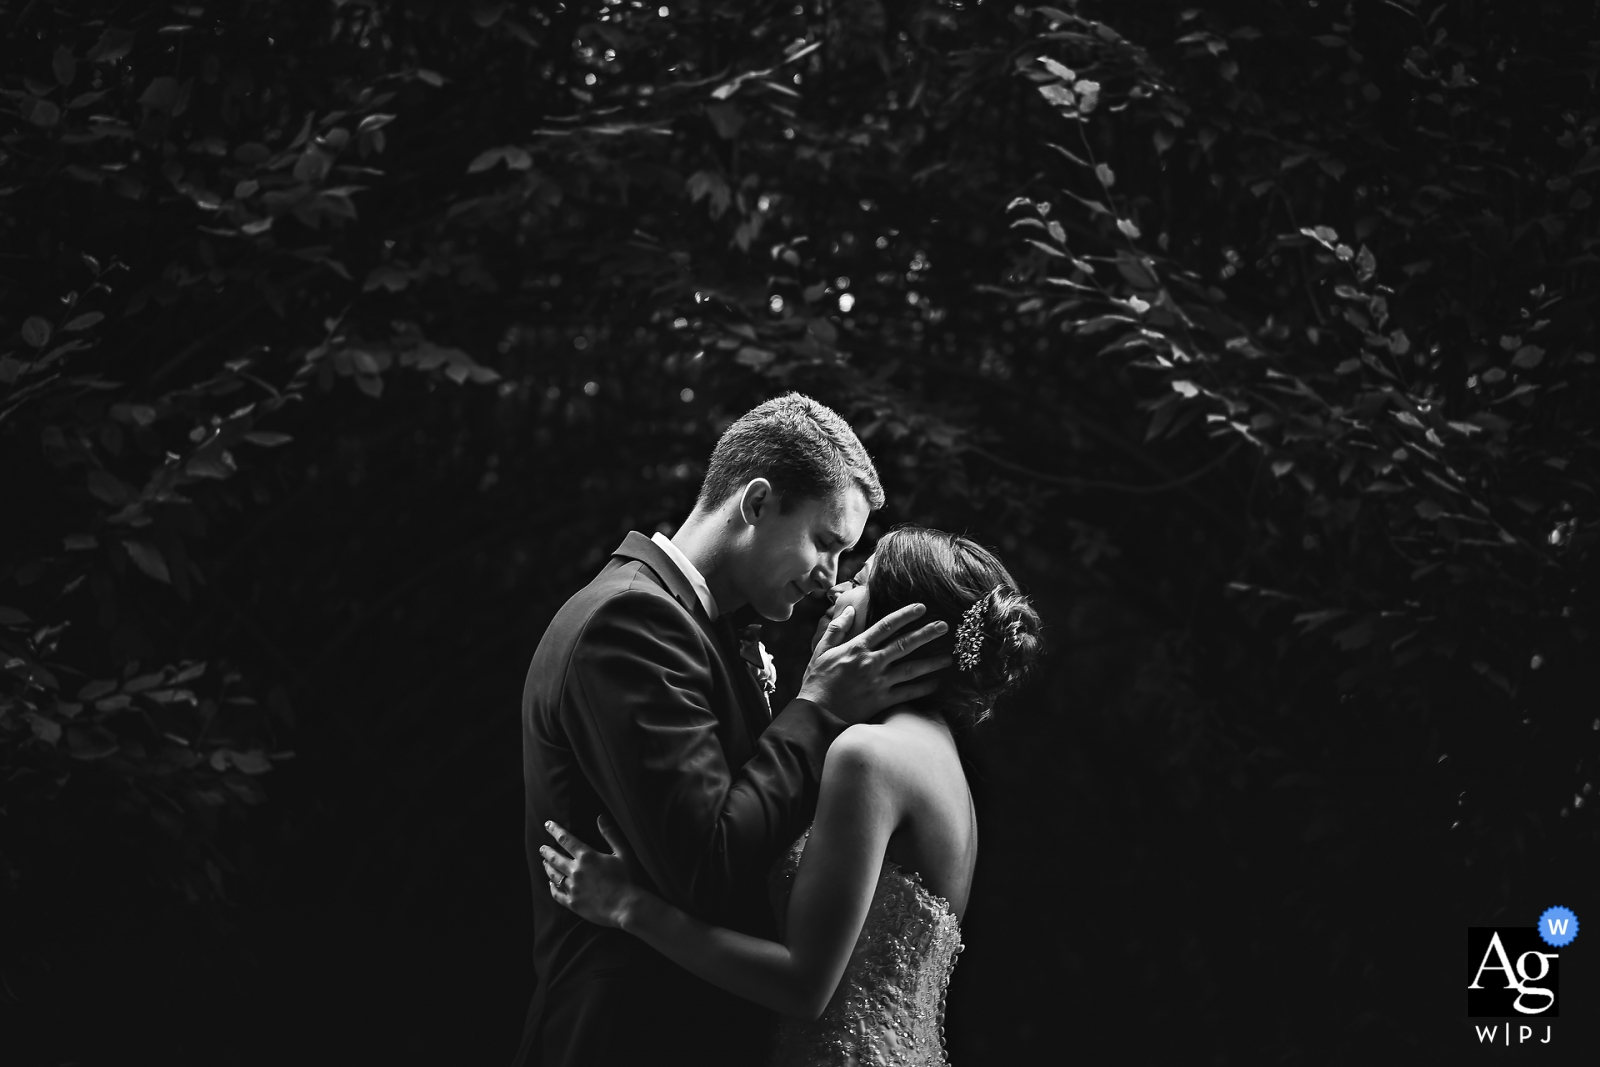 Pictures of the Bride & Groom Kissing after first look - Snug harbor cultural center & botanical garden, Staten Island, NY